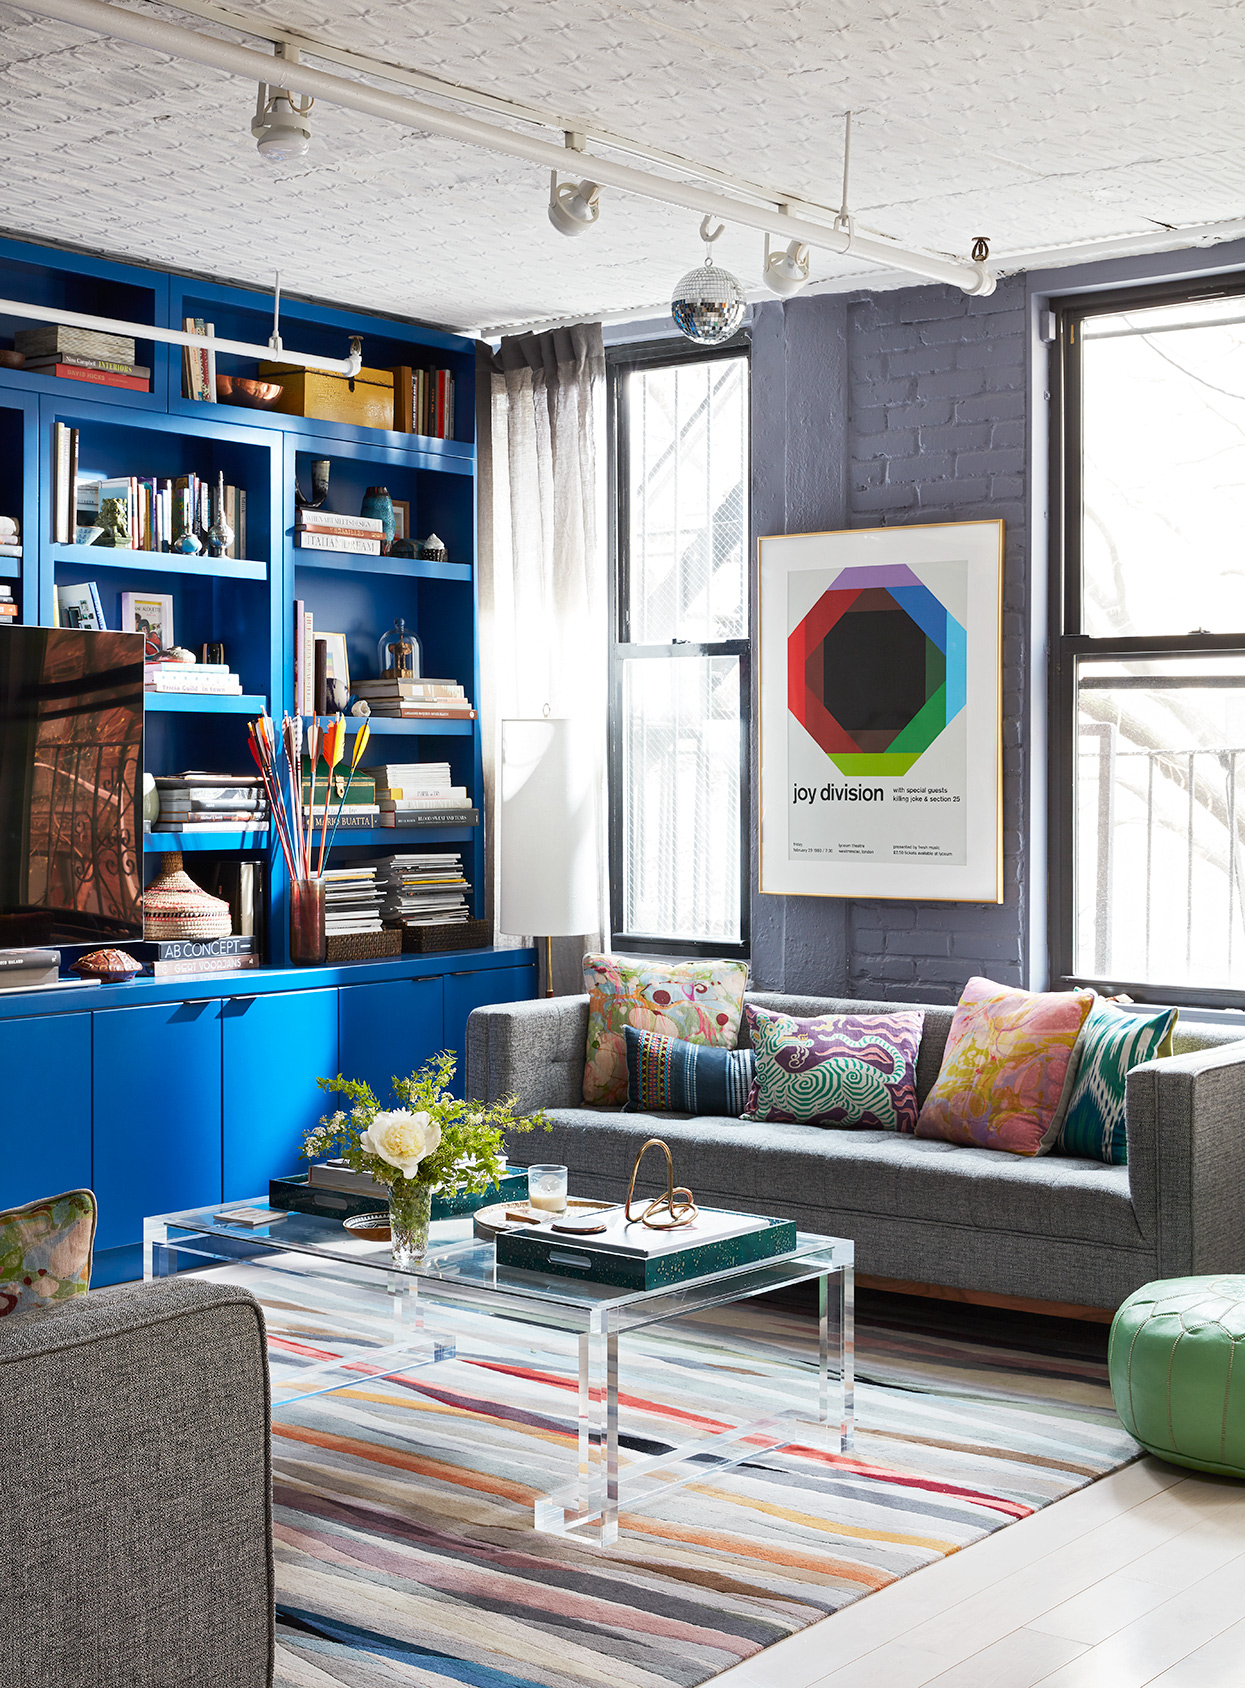 This Interior Designer's Home Masterfully Mixes Color